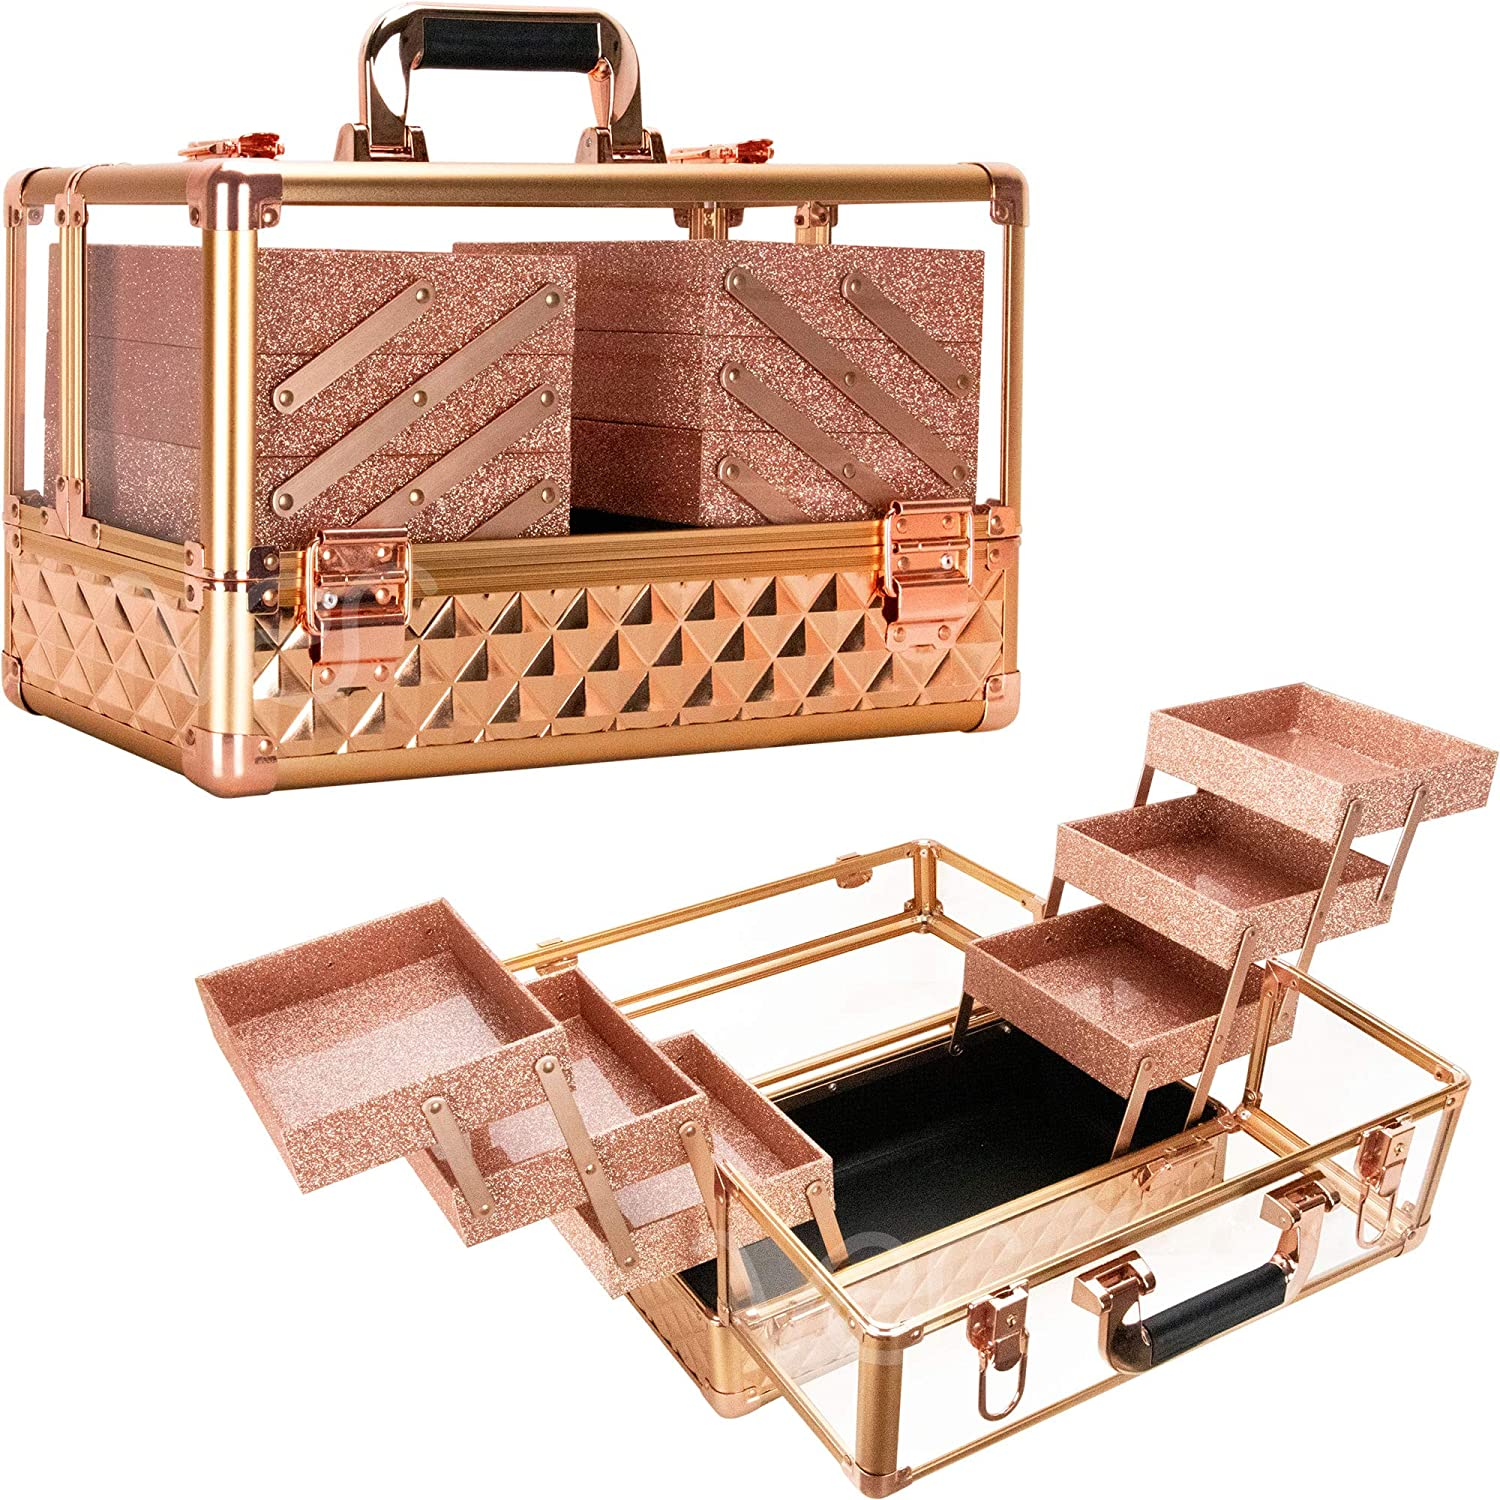 Ver Beauty 3.8mm armored acrylic makeup case jewelry portable travel organizer with 6 extendable trays clear cover micro-fiber cloth brush holders keylocks - vp016, Rose Gold Diamond